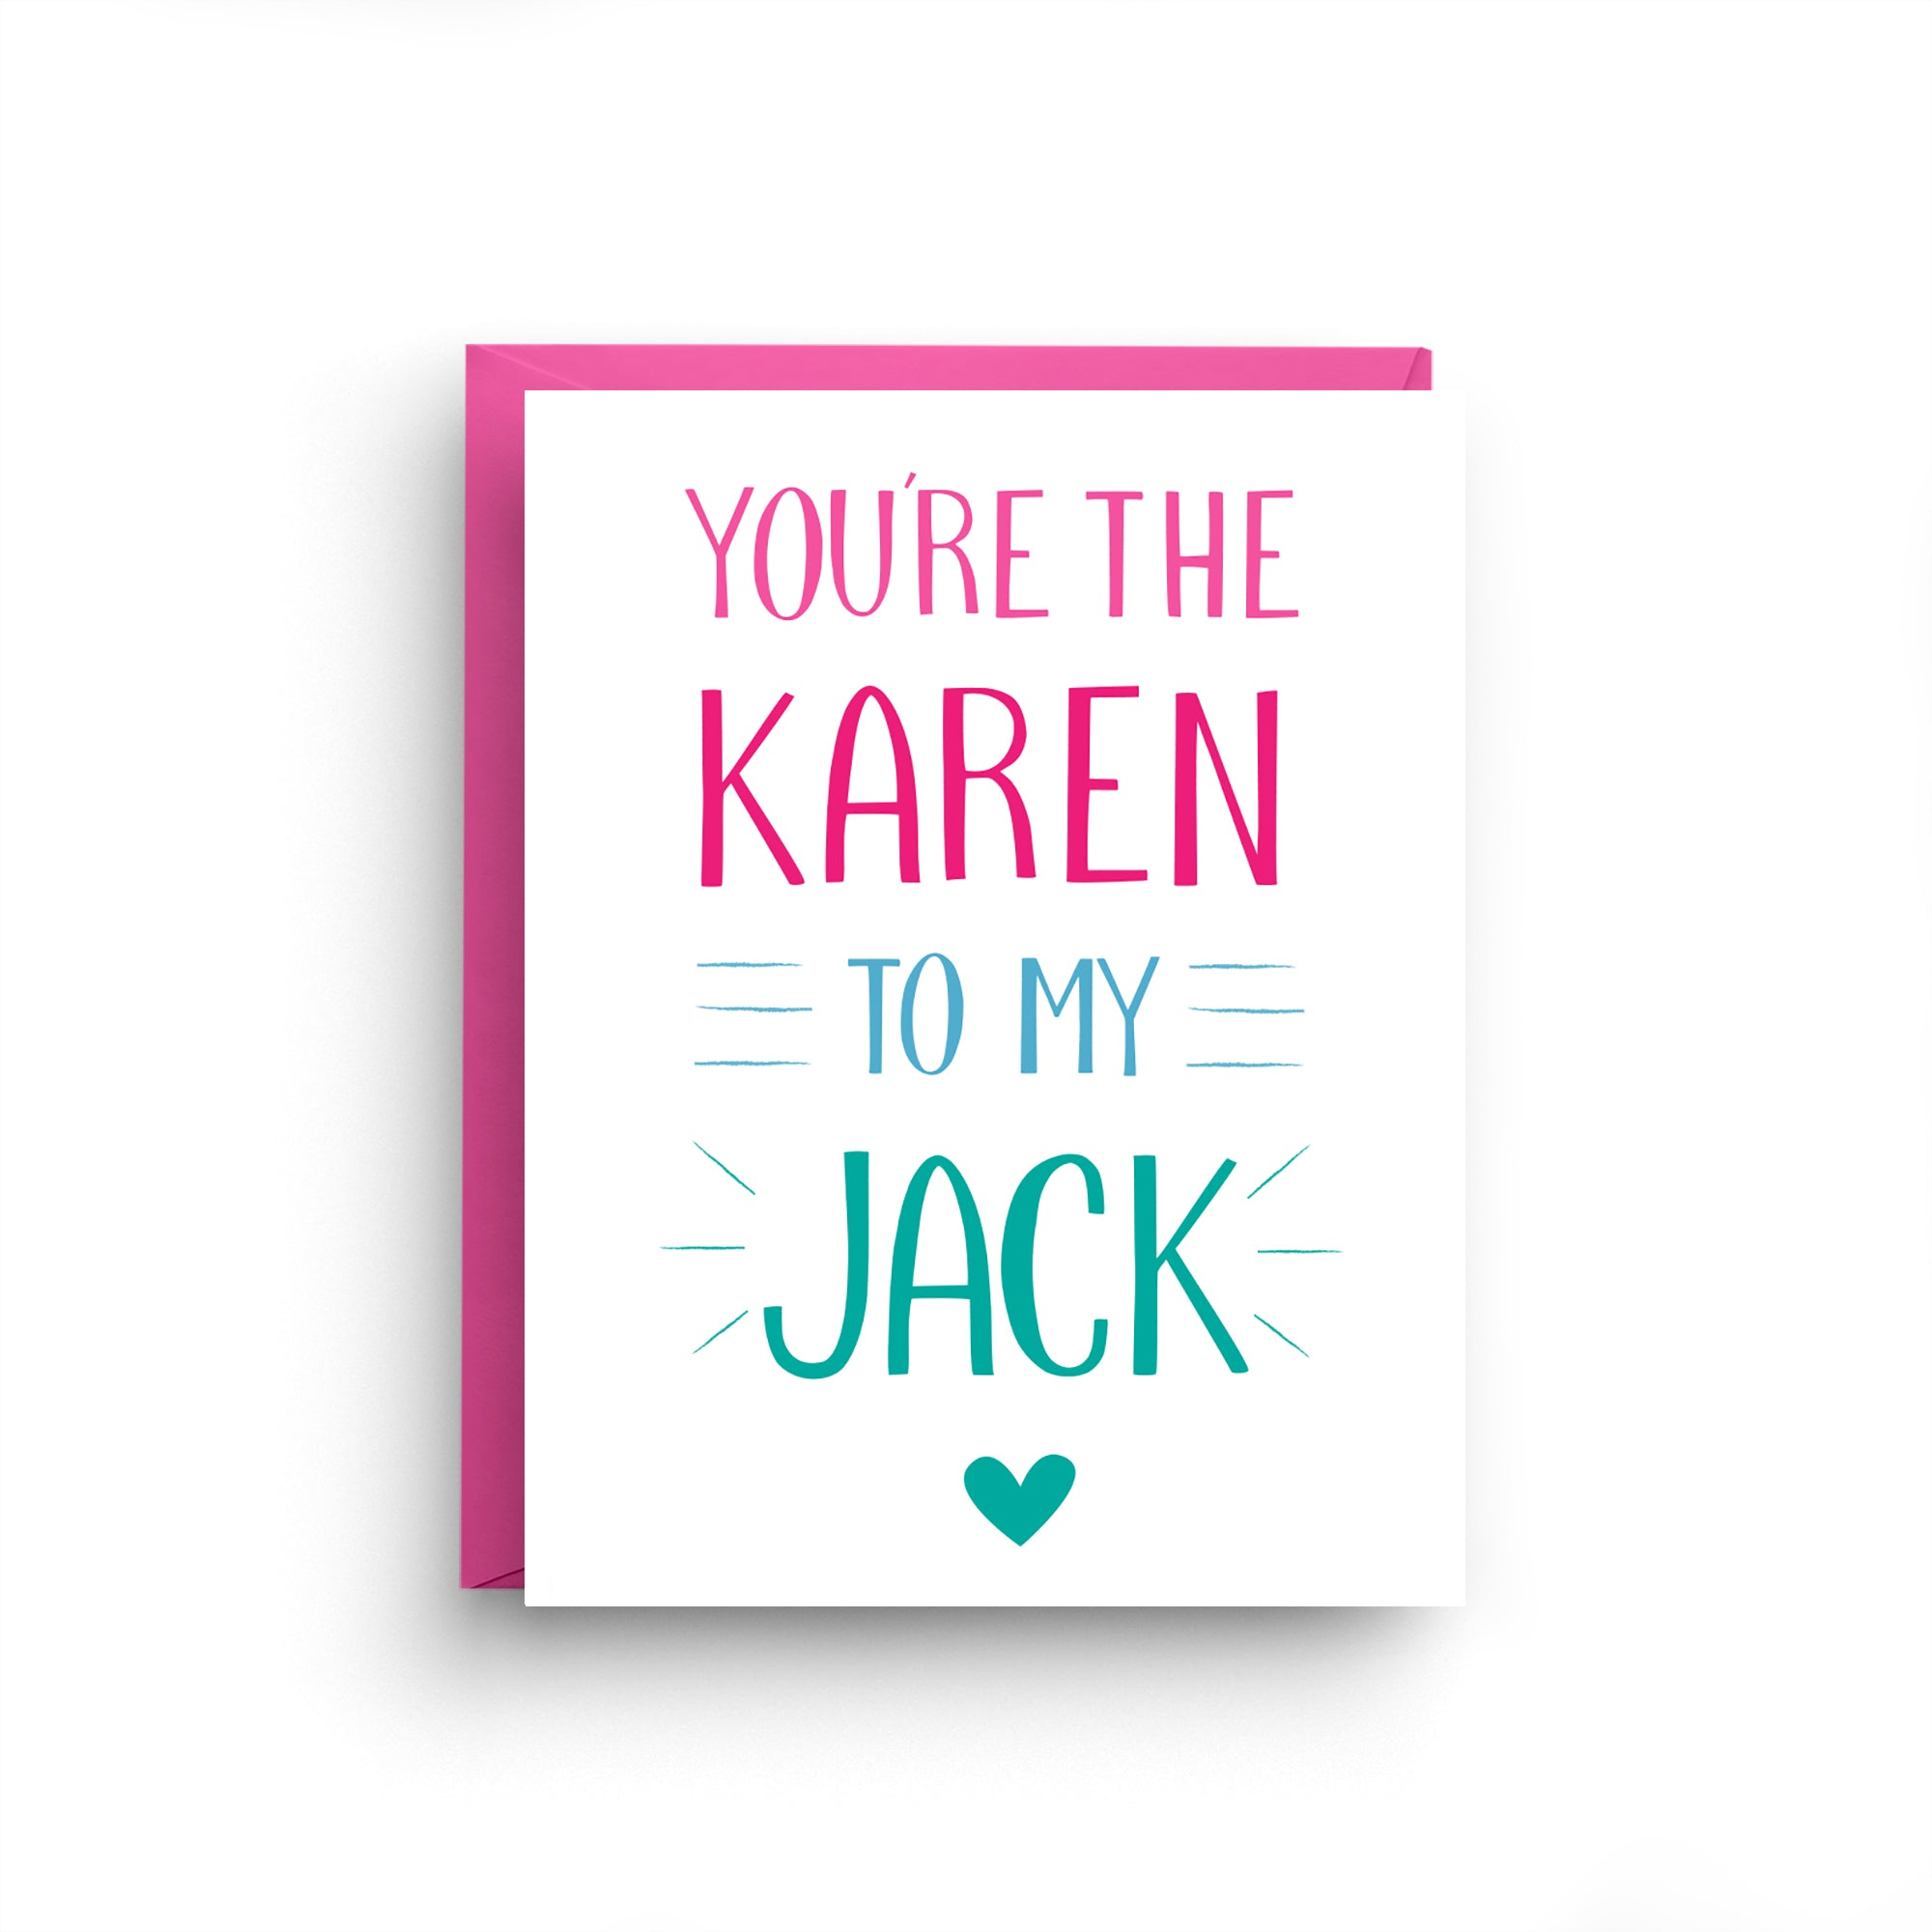 best friend card, friendship card, best friend gift, just because card, best friend birthday, lgbt card, will and grace, karen and jack, tv show, gay friendly card, lgbtq card, gay wedding card, ON SALE